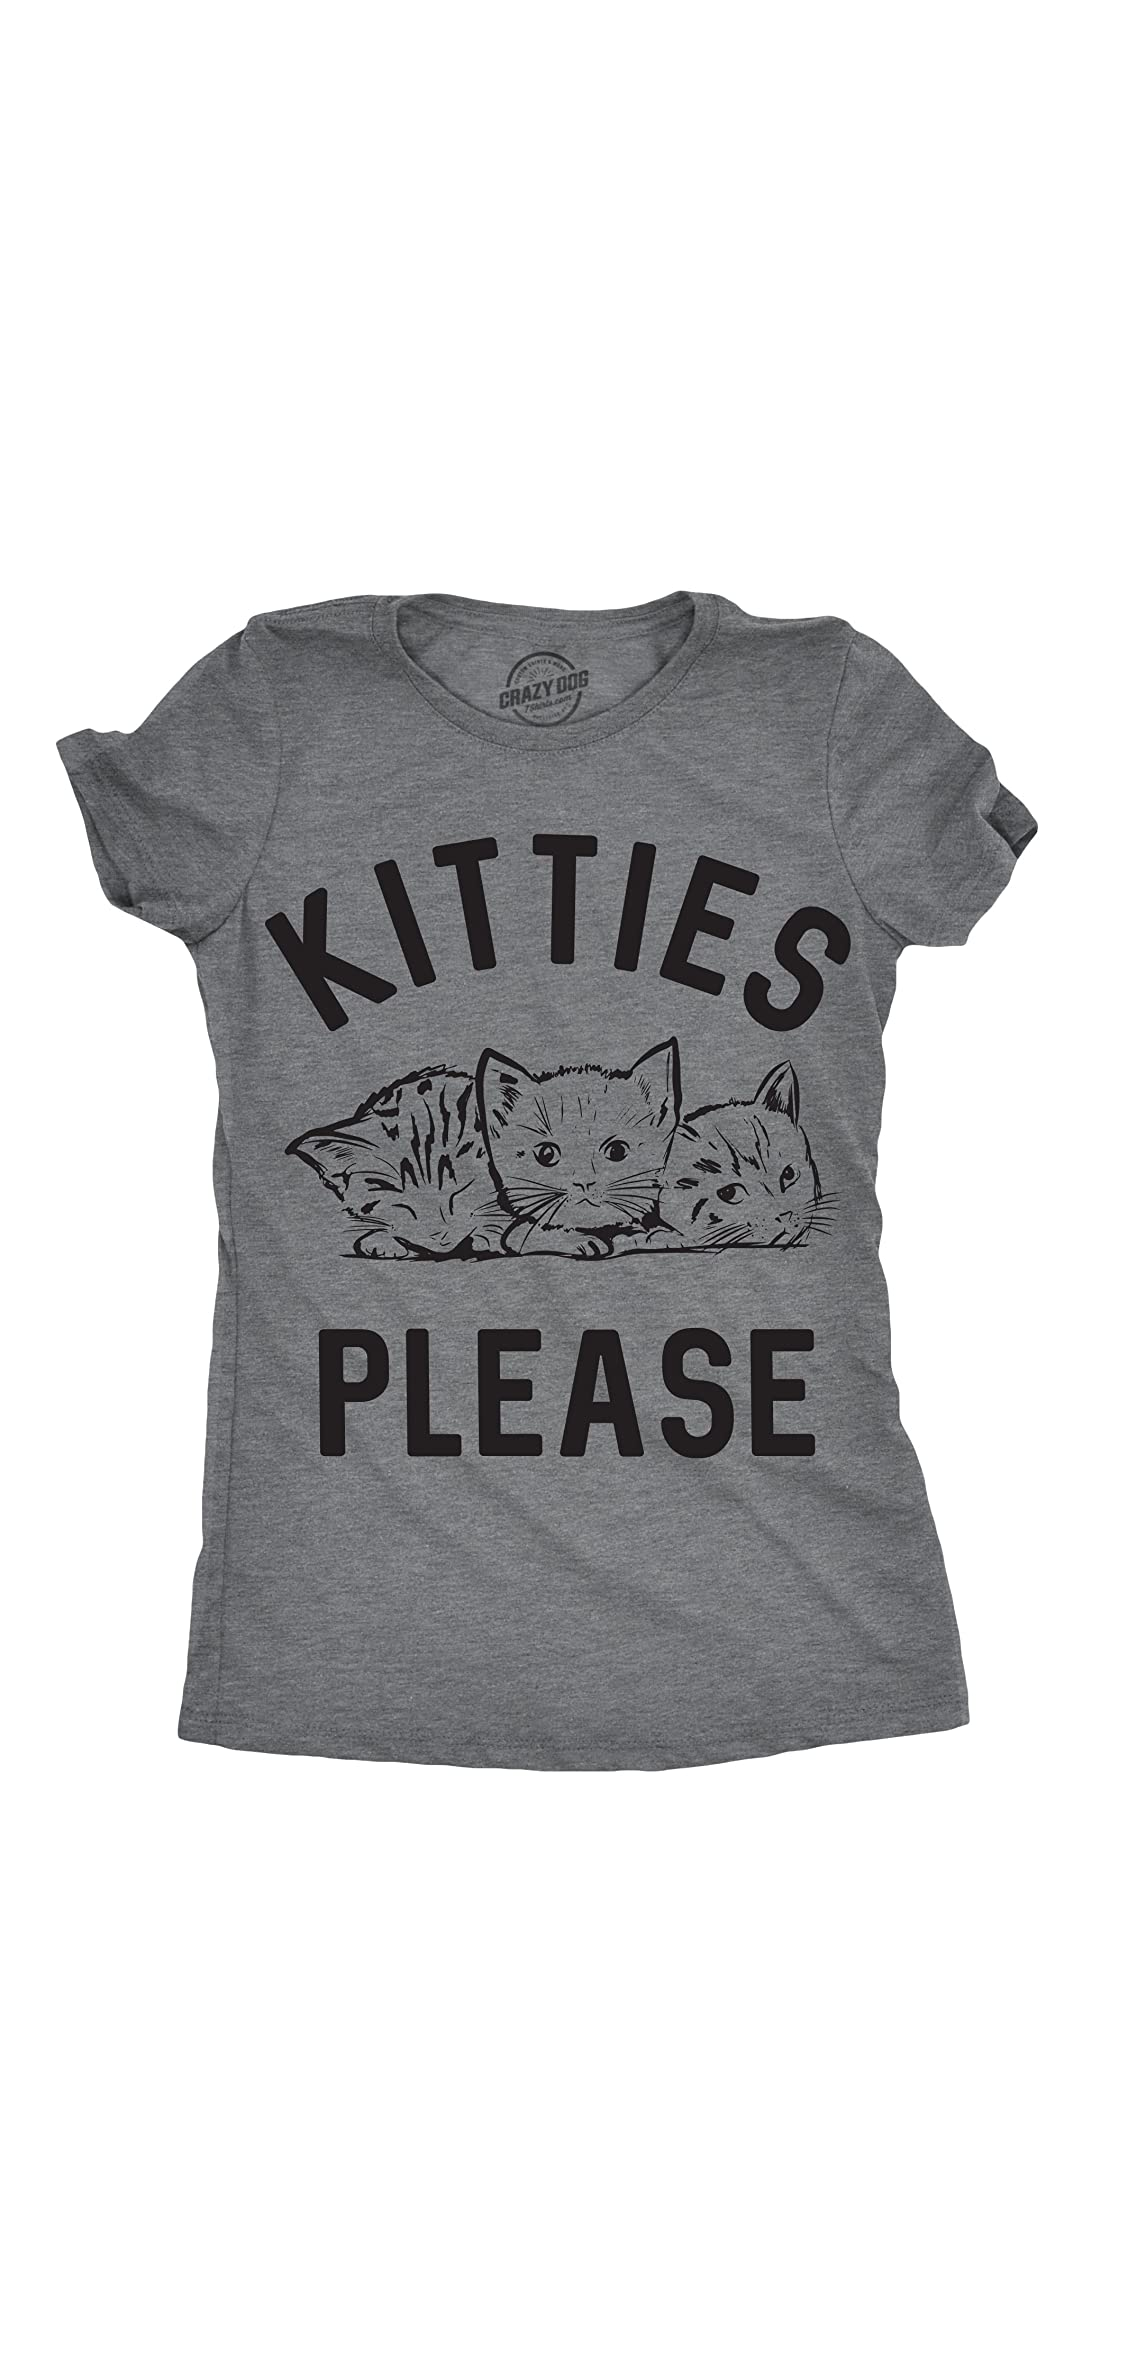 Womens Kitties Please T Shirt Cat Lover Gift Hilarious Sarcastic